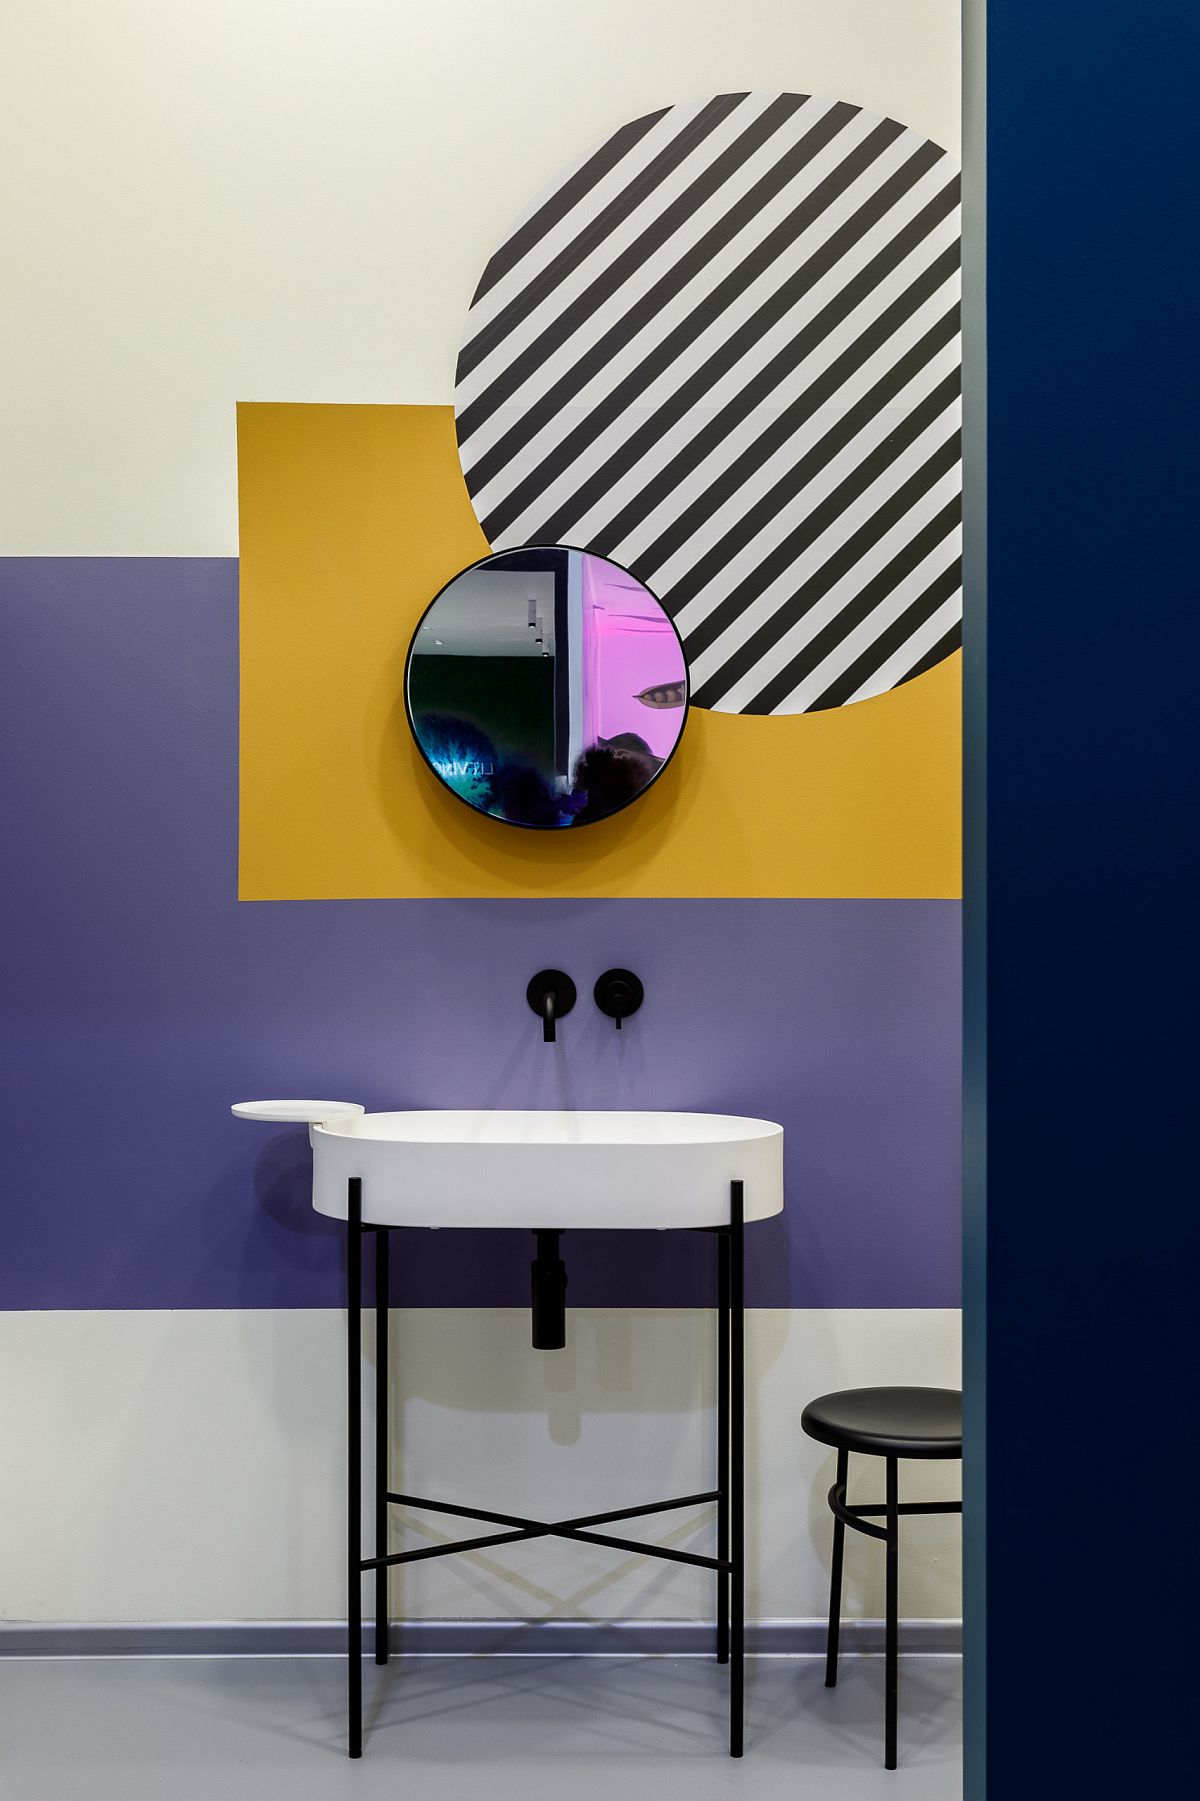 Multiple colors on the wall along with stripes bring certain artistic appeal to this minimal bathroom